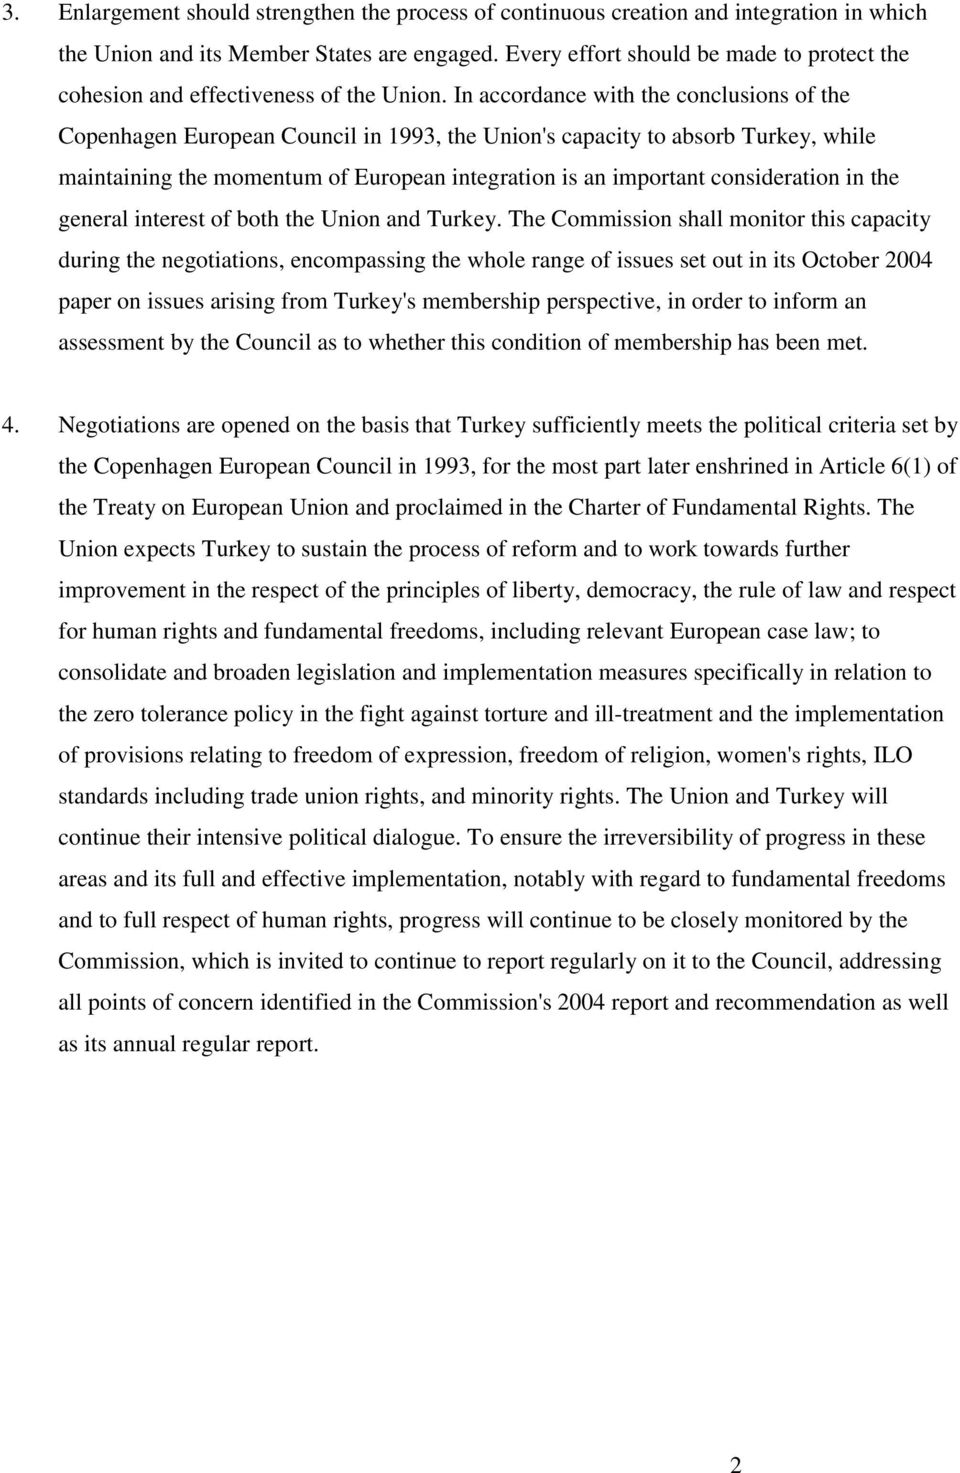 In accordance with the conclusions of the Copenhagen European Council in 1993, the Union's capacity to absorb Turkey, while maintaining the momentum of European integration is an important